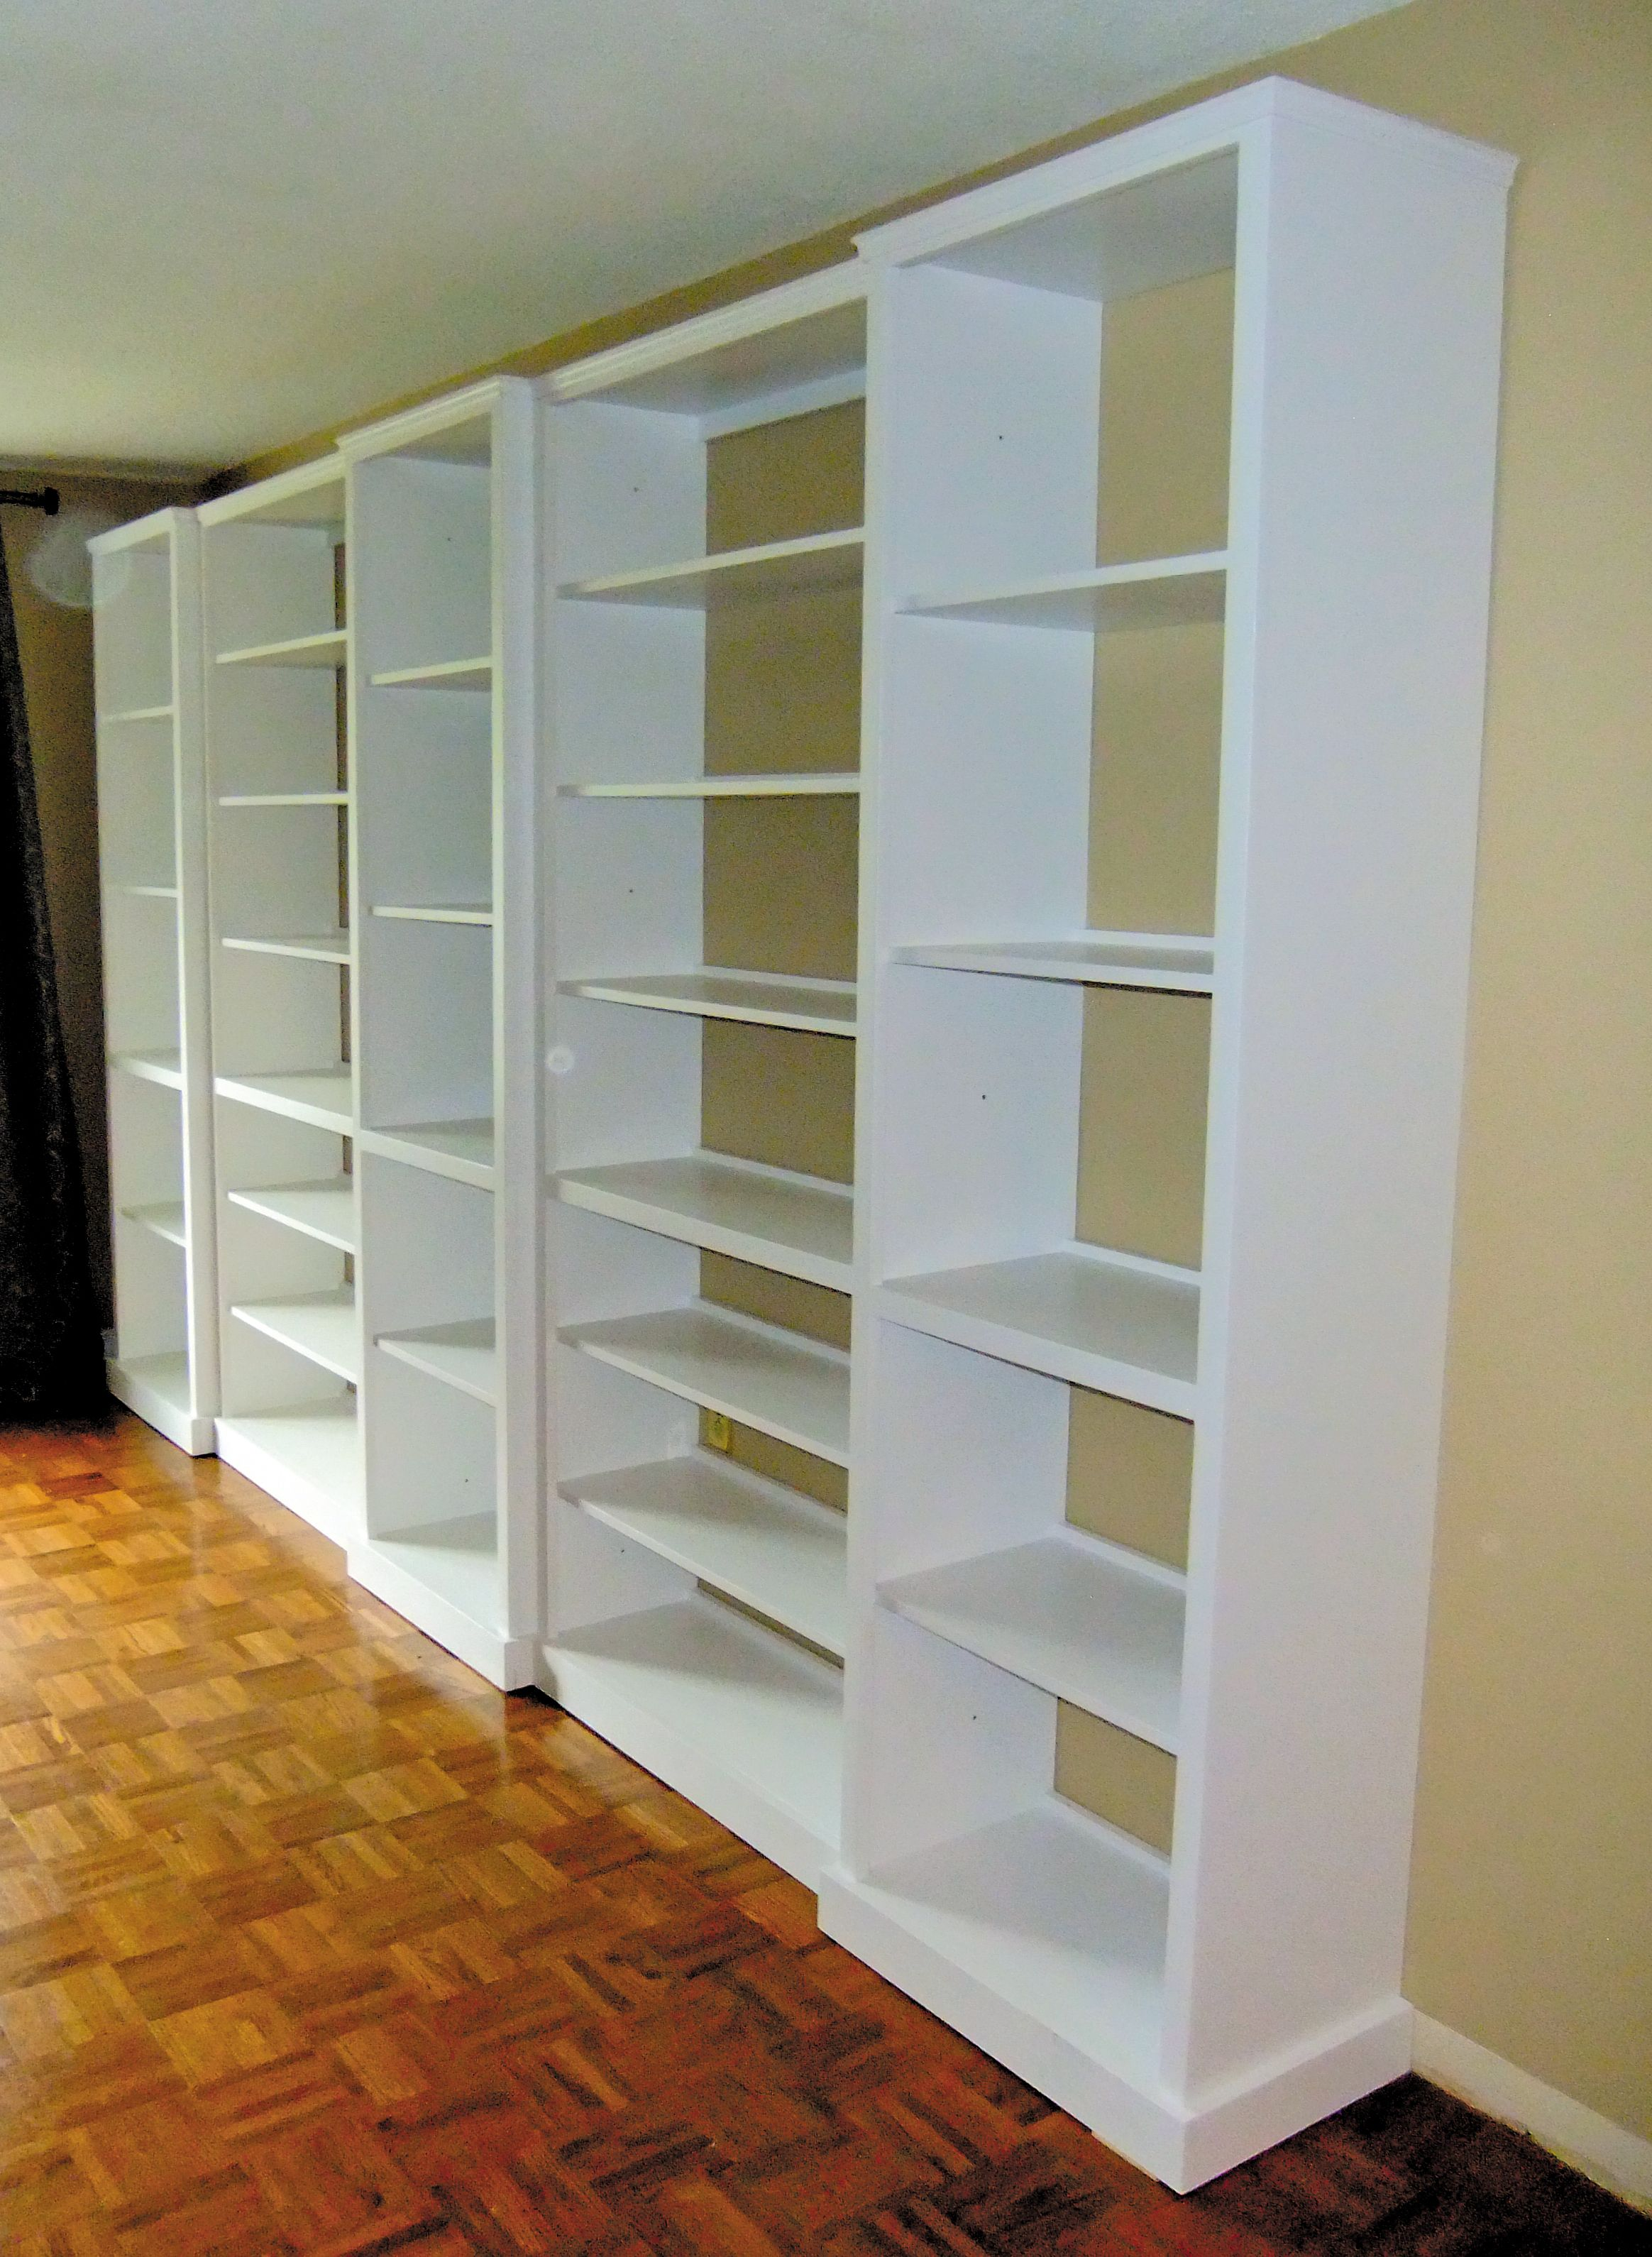 12 Feet Of Shelving Built In 5 Pieces In Staggered